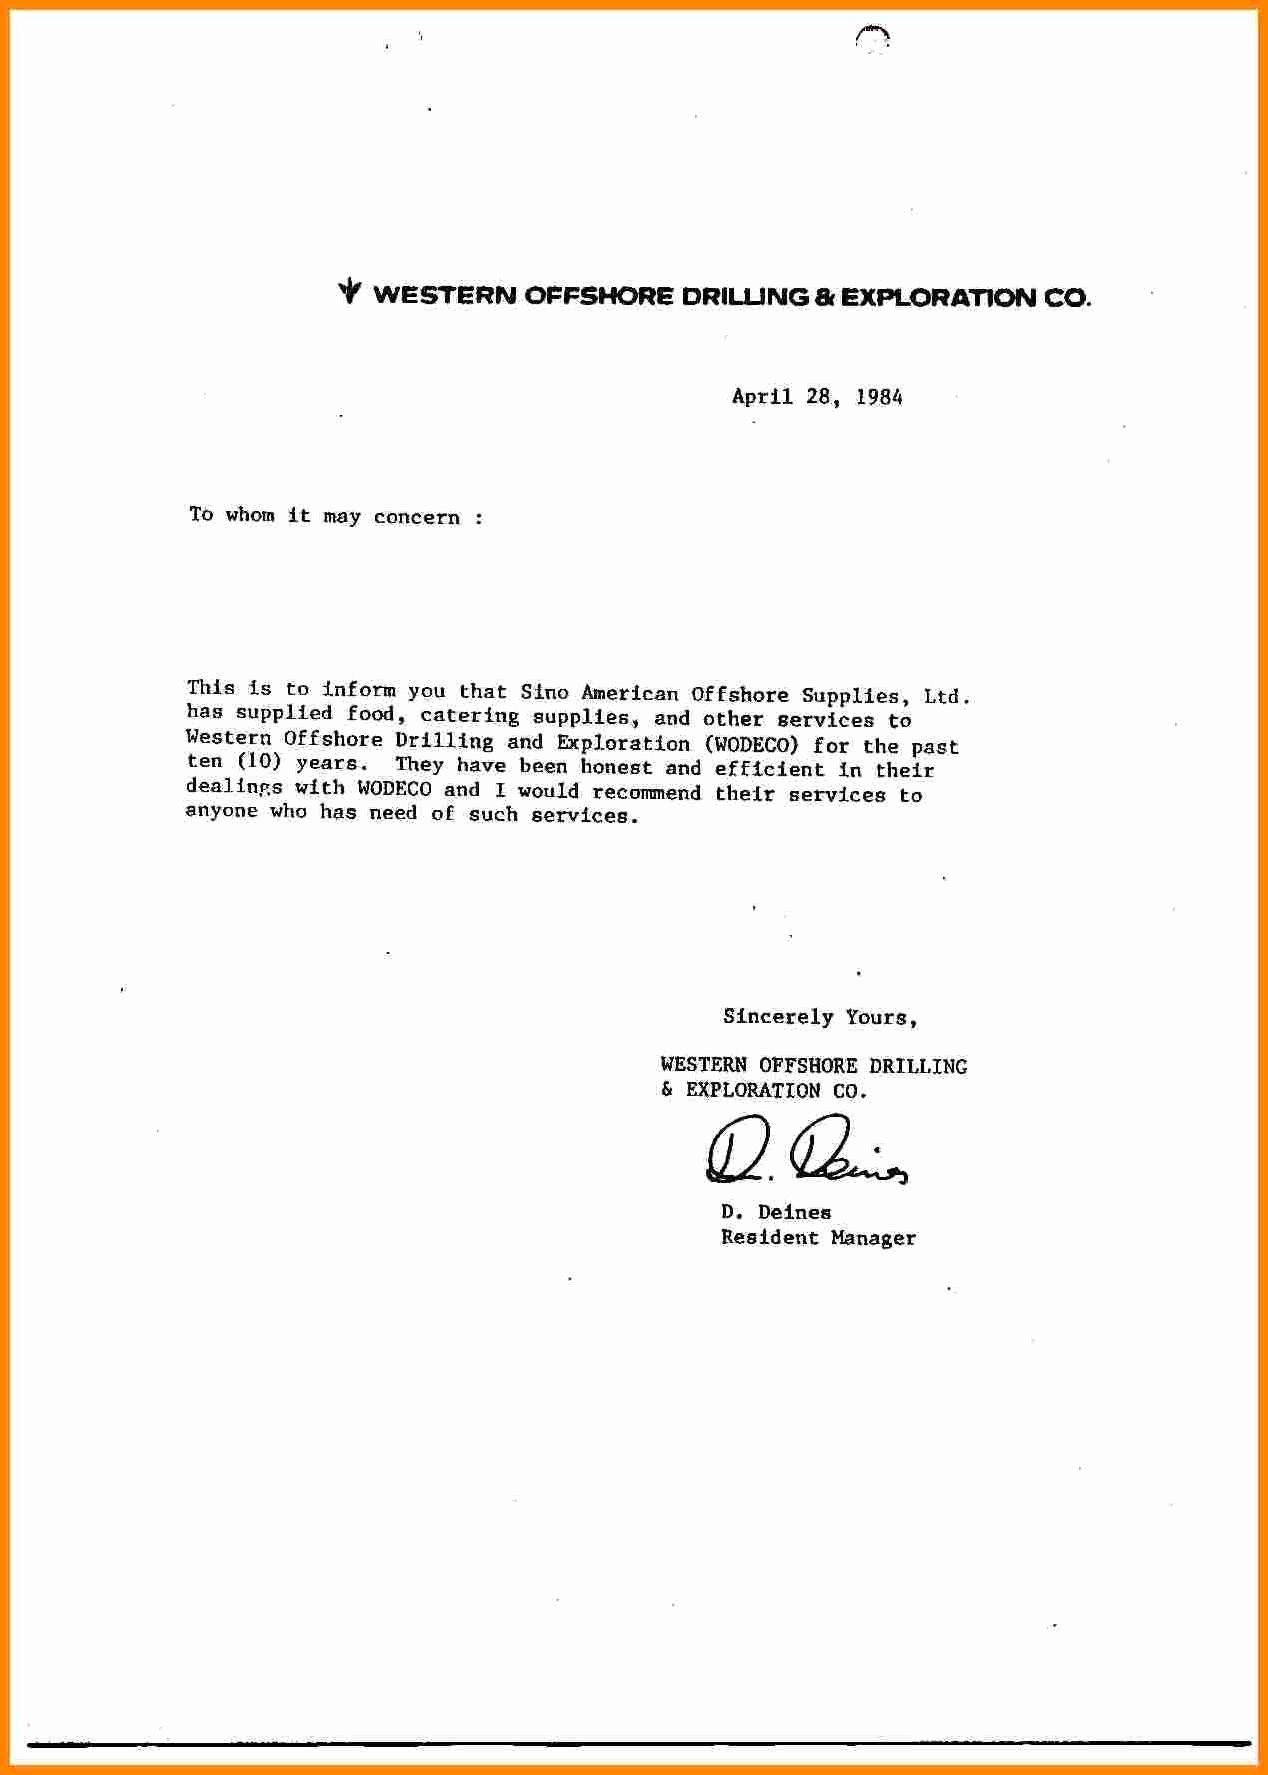 Letter Of Recommendation Employment Template Awesome 9 General Letter Of Re Mendation Samples